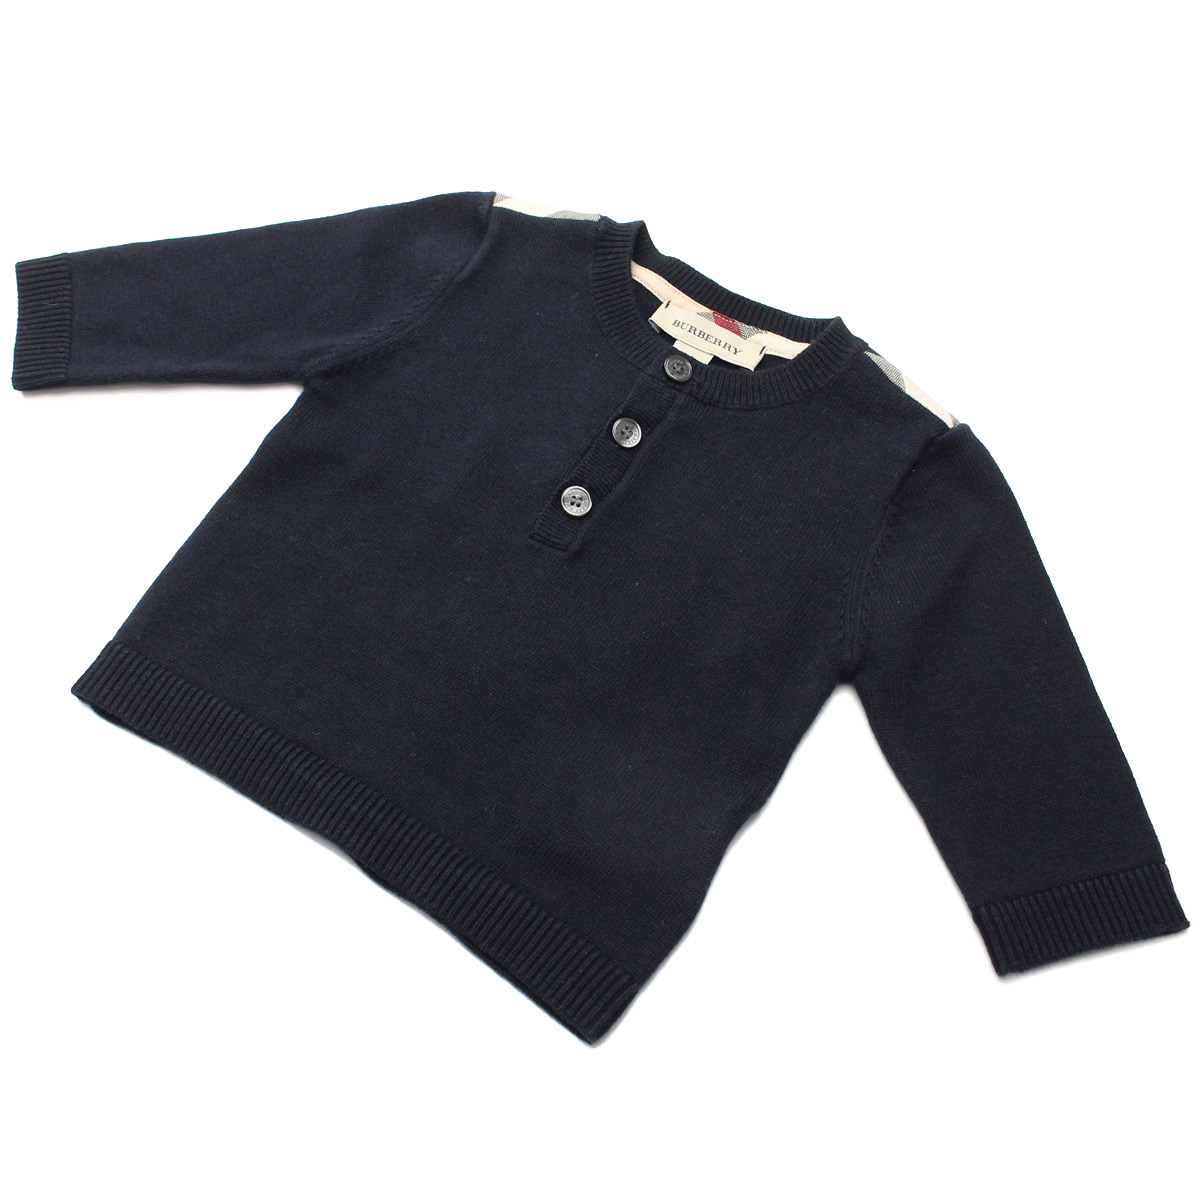 9189b905c9a0 Bighit The total brand wholesale  Burberry (BURBERRY) baby sweater ...